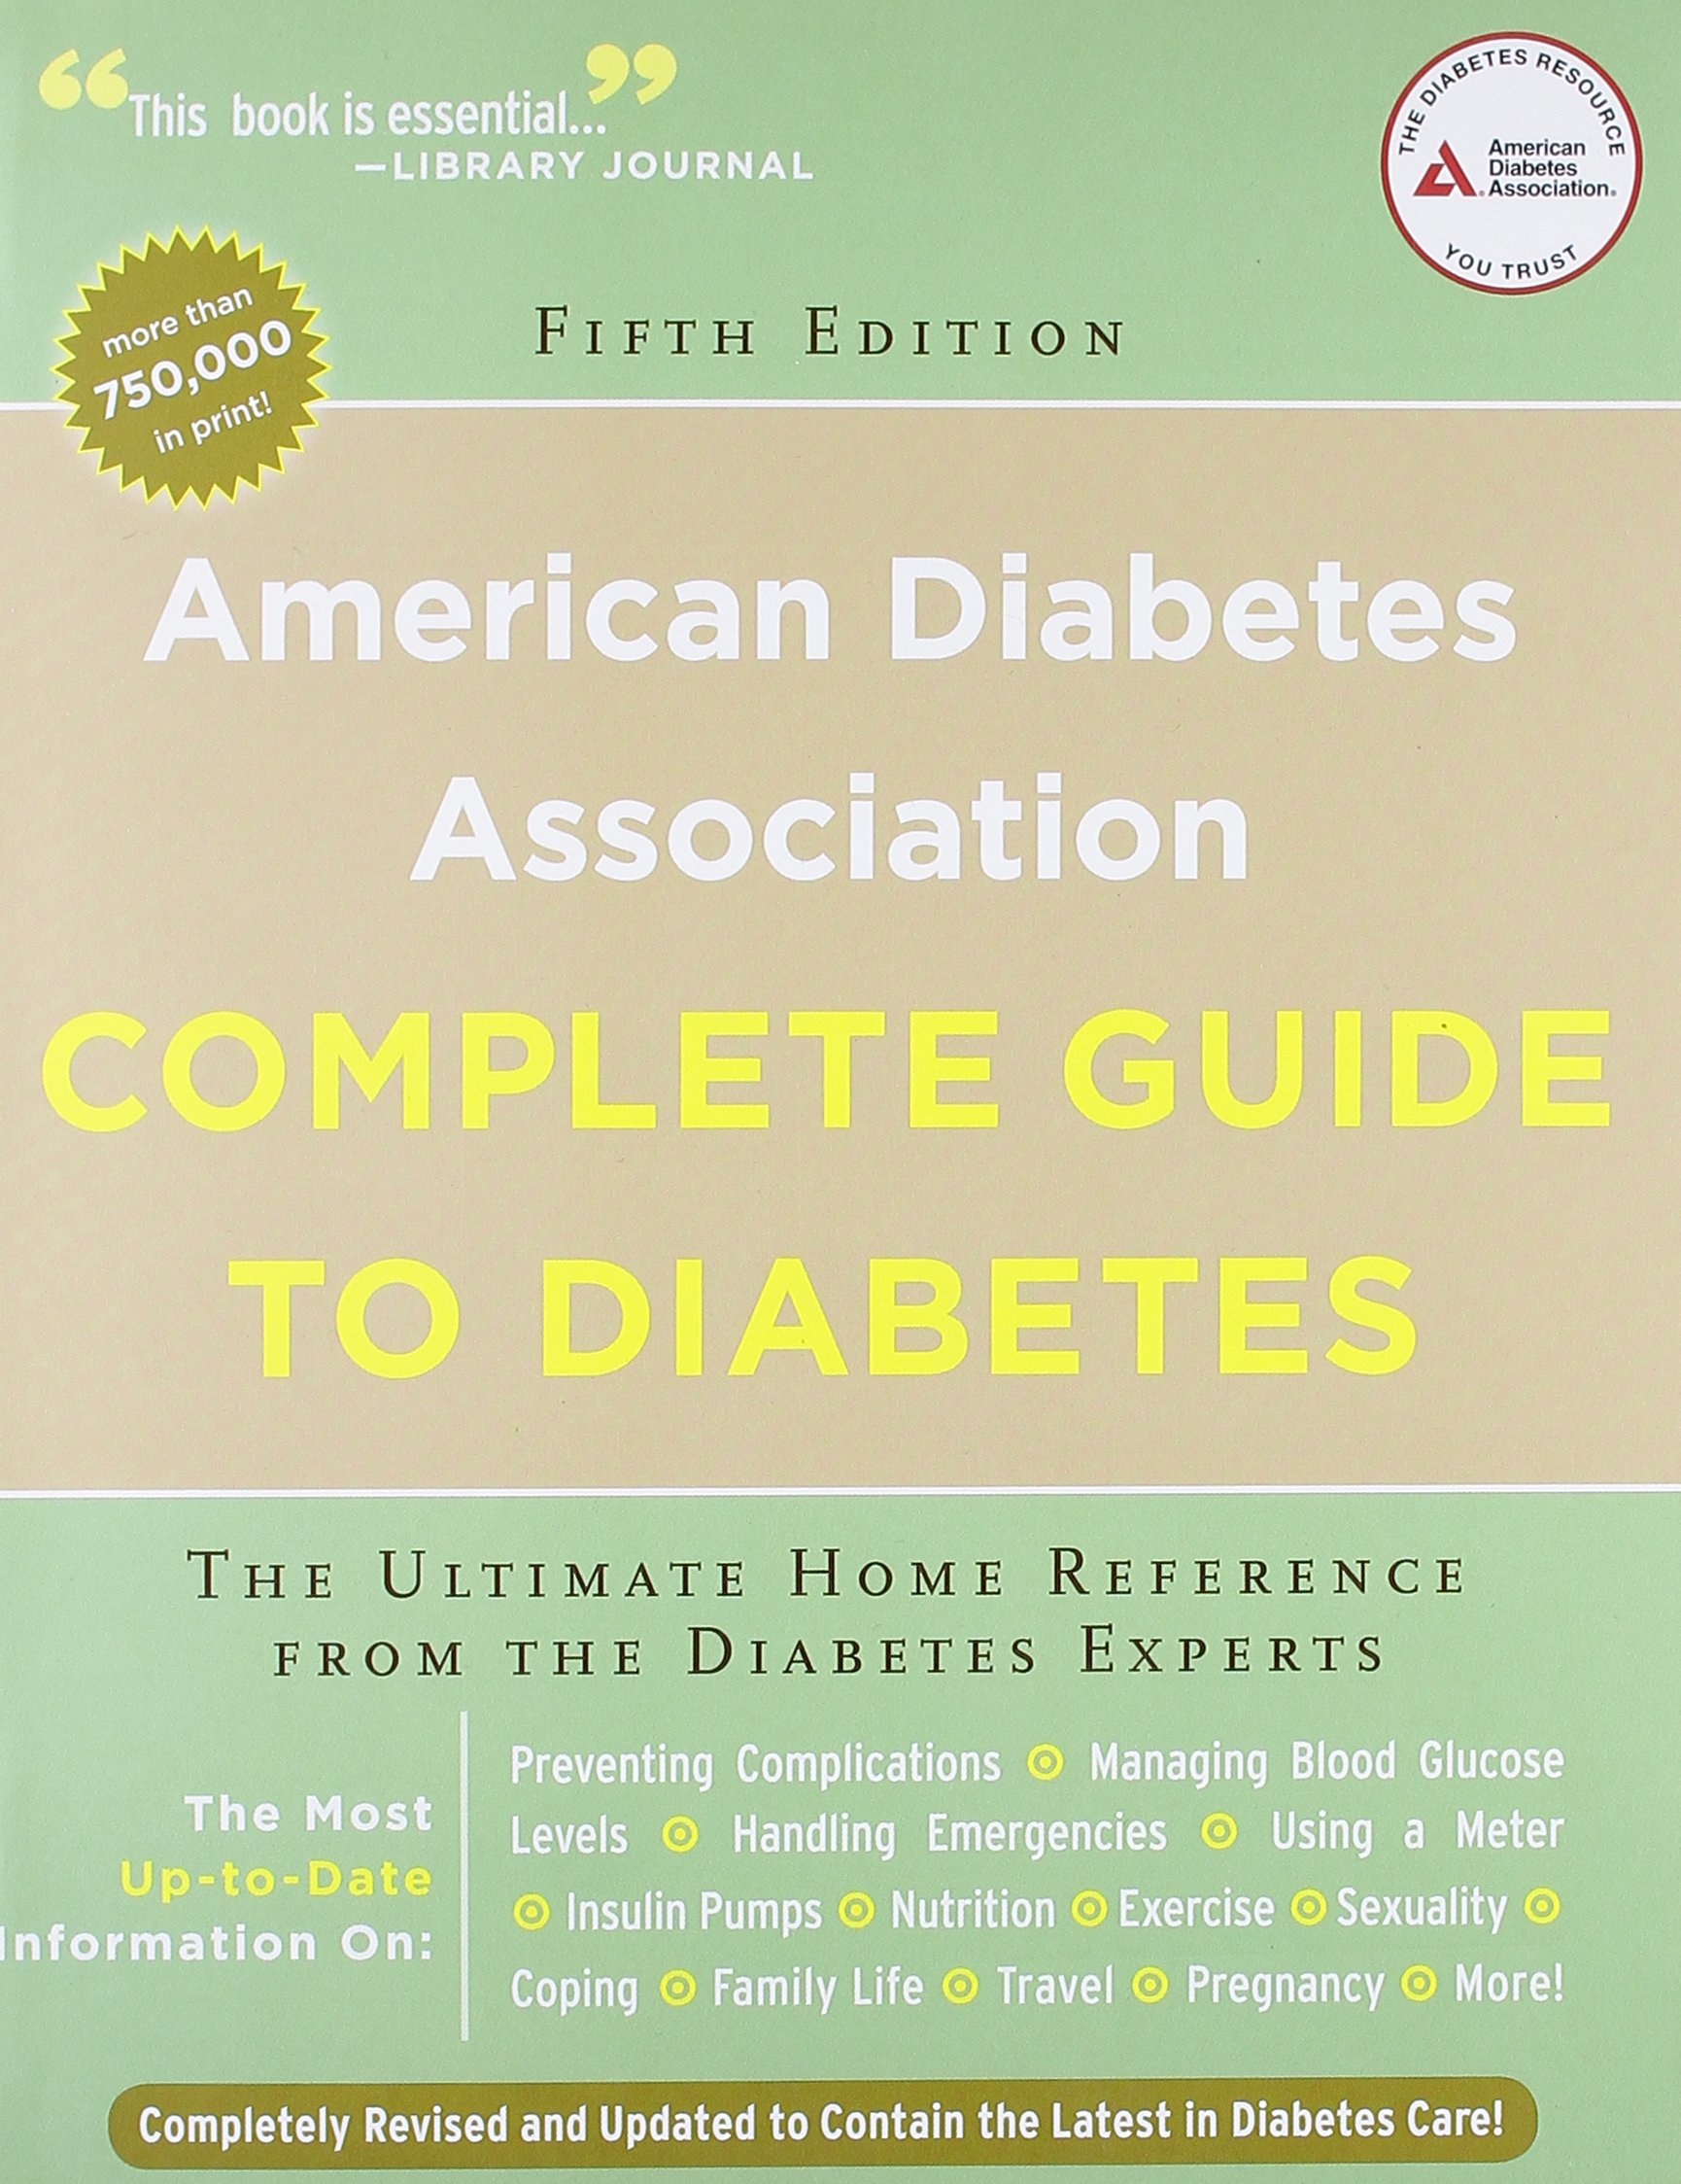 American Diabetes Association Complete Guide product image